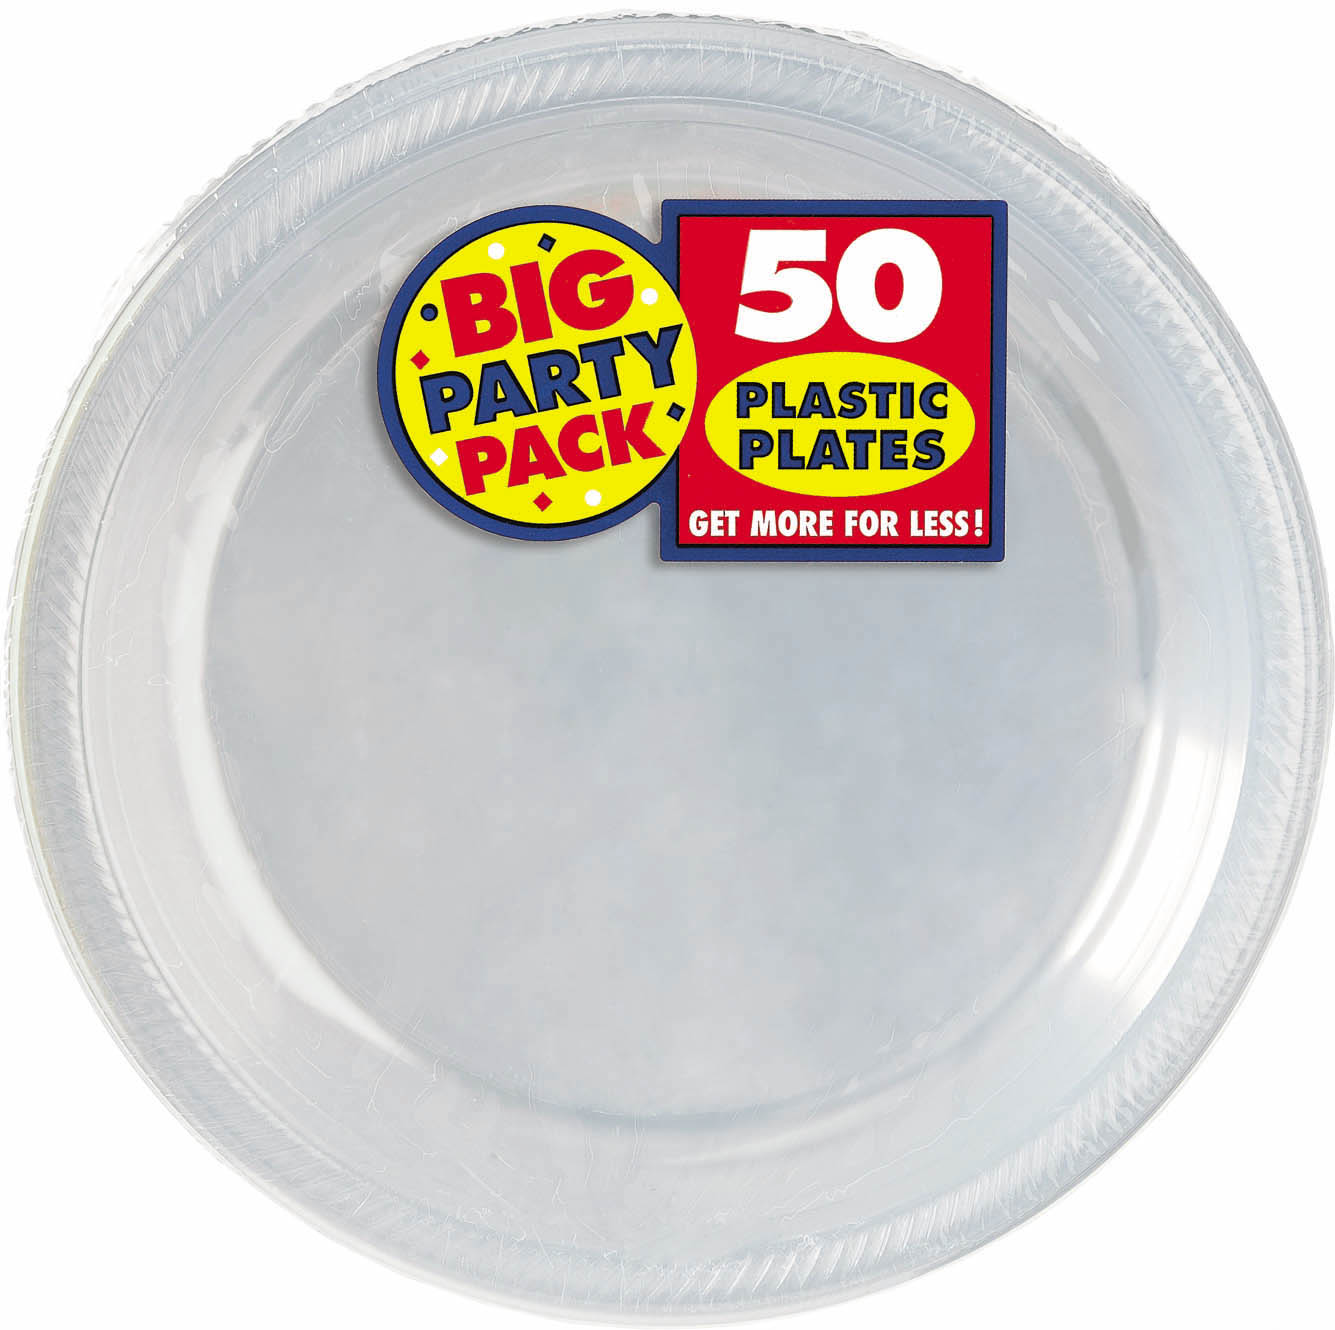 Big Party Pack 10 1/4 inch Plastic Plates- Clear